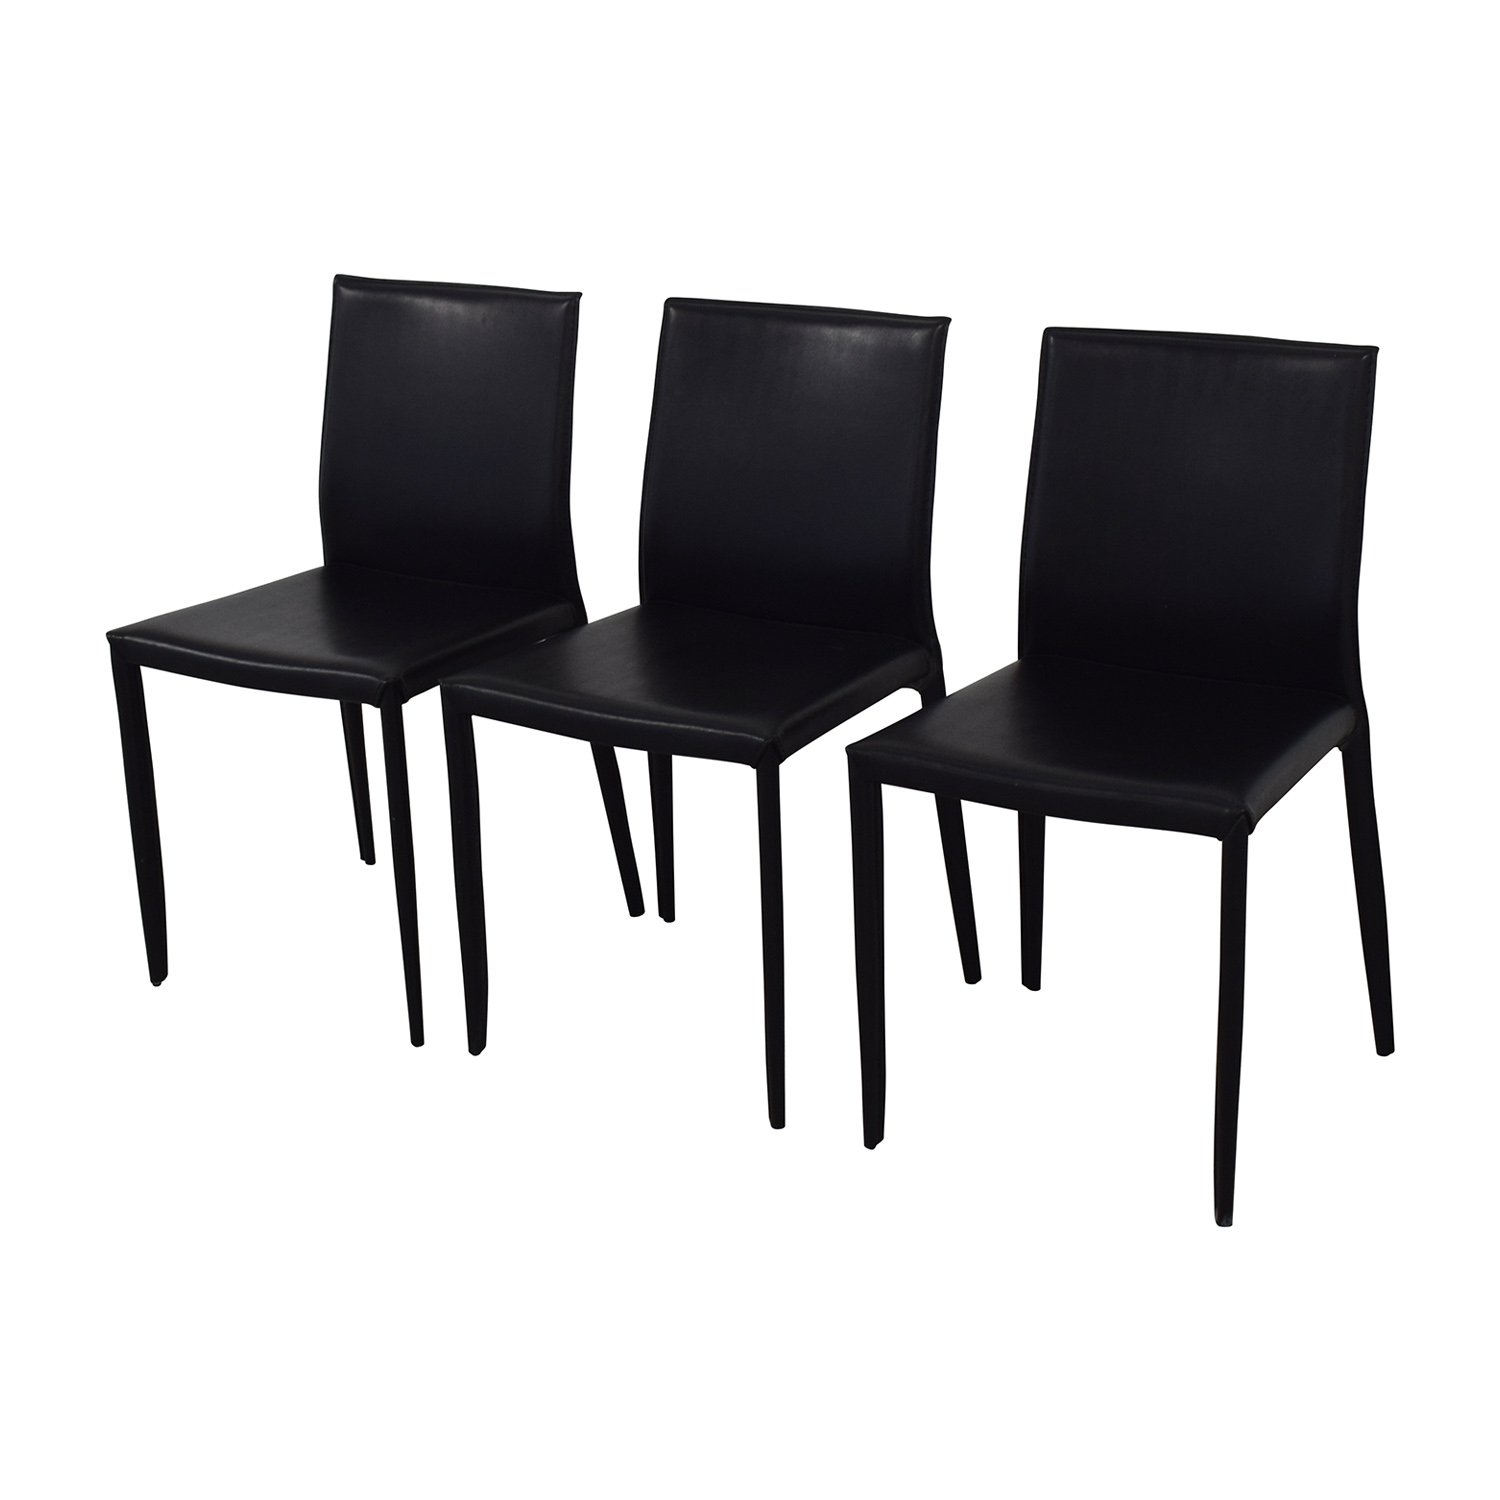 Room & Board Room & Board Modern Black Dining Chairs nj